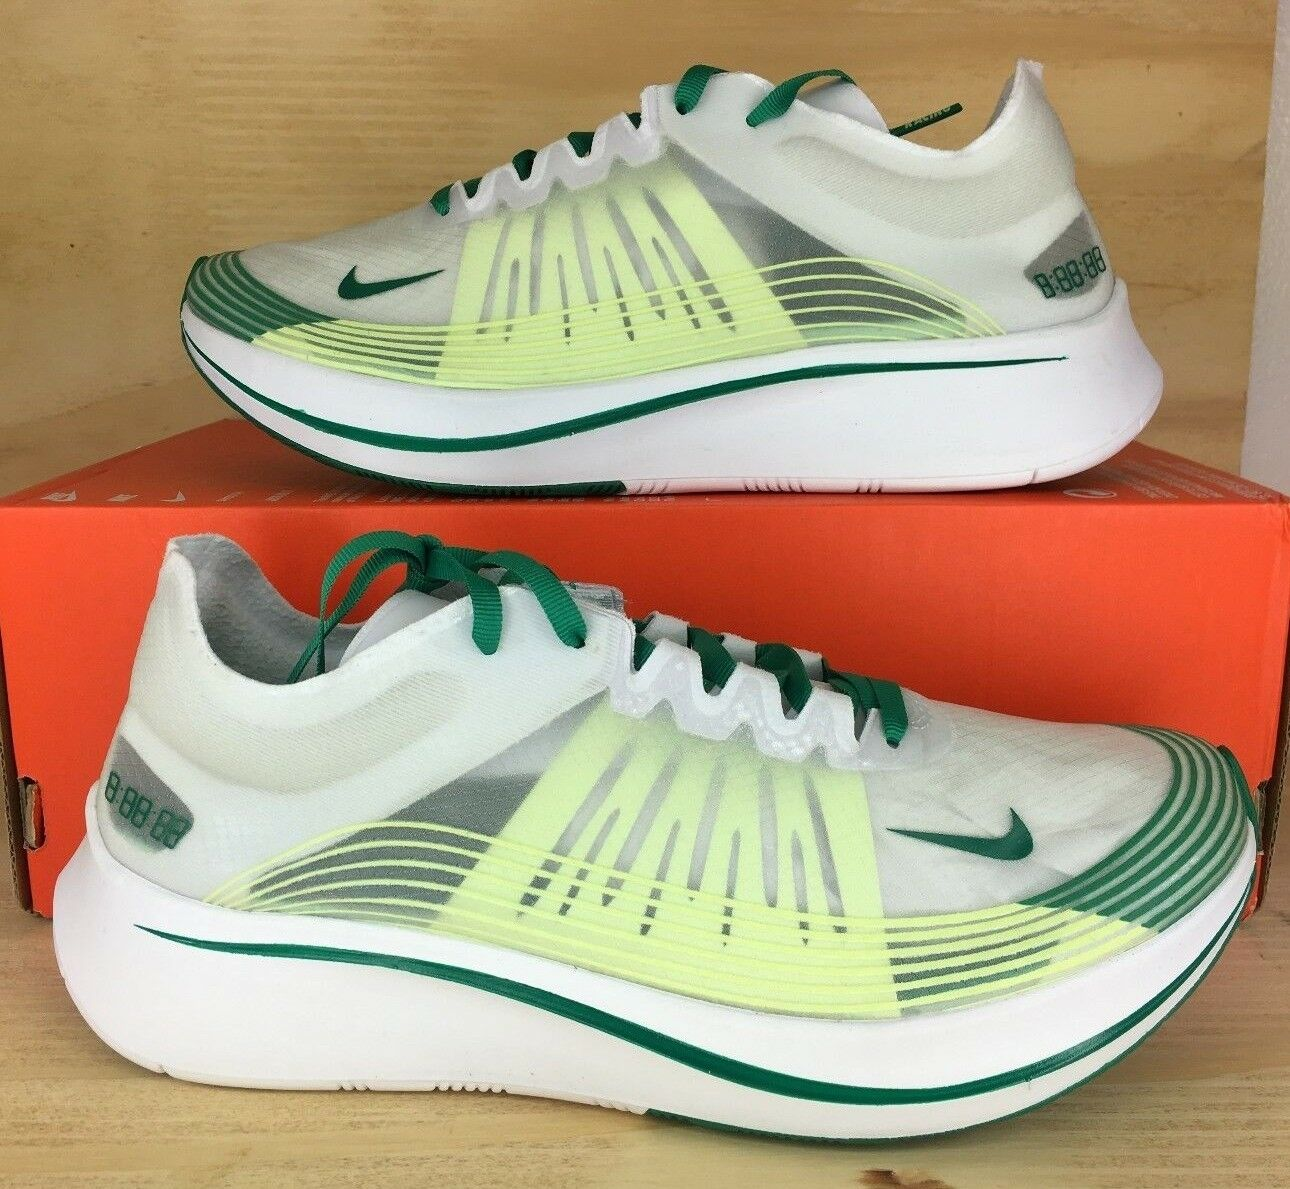 Nike Zoom Fly SP Mens Running Shoes Lucid Green Summit White AJ9282-101 Size 7.5